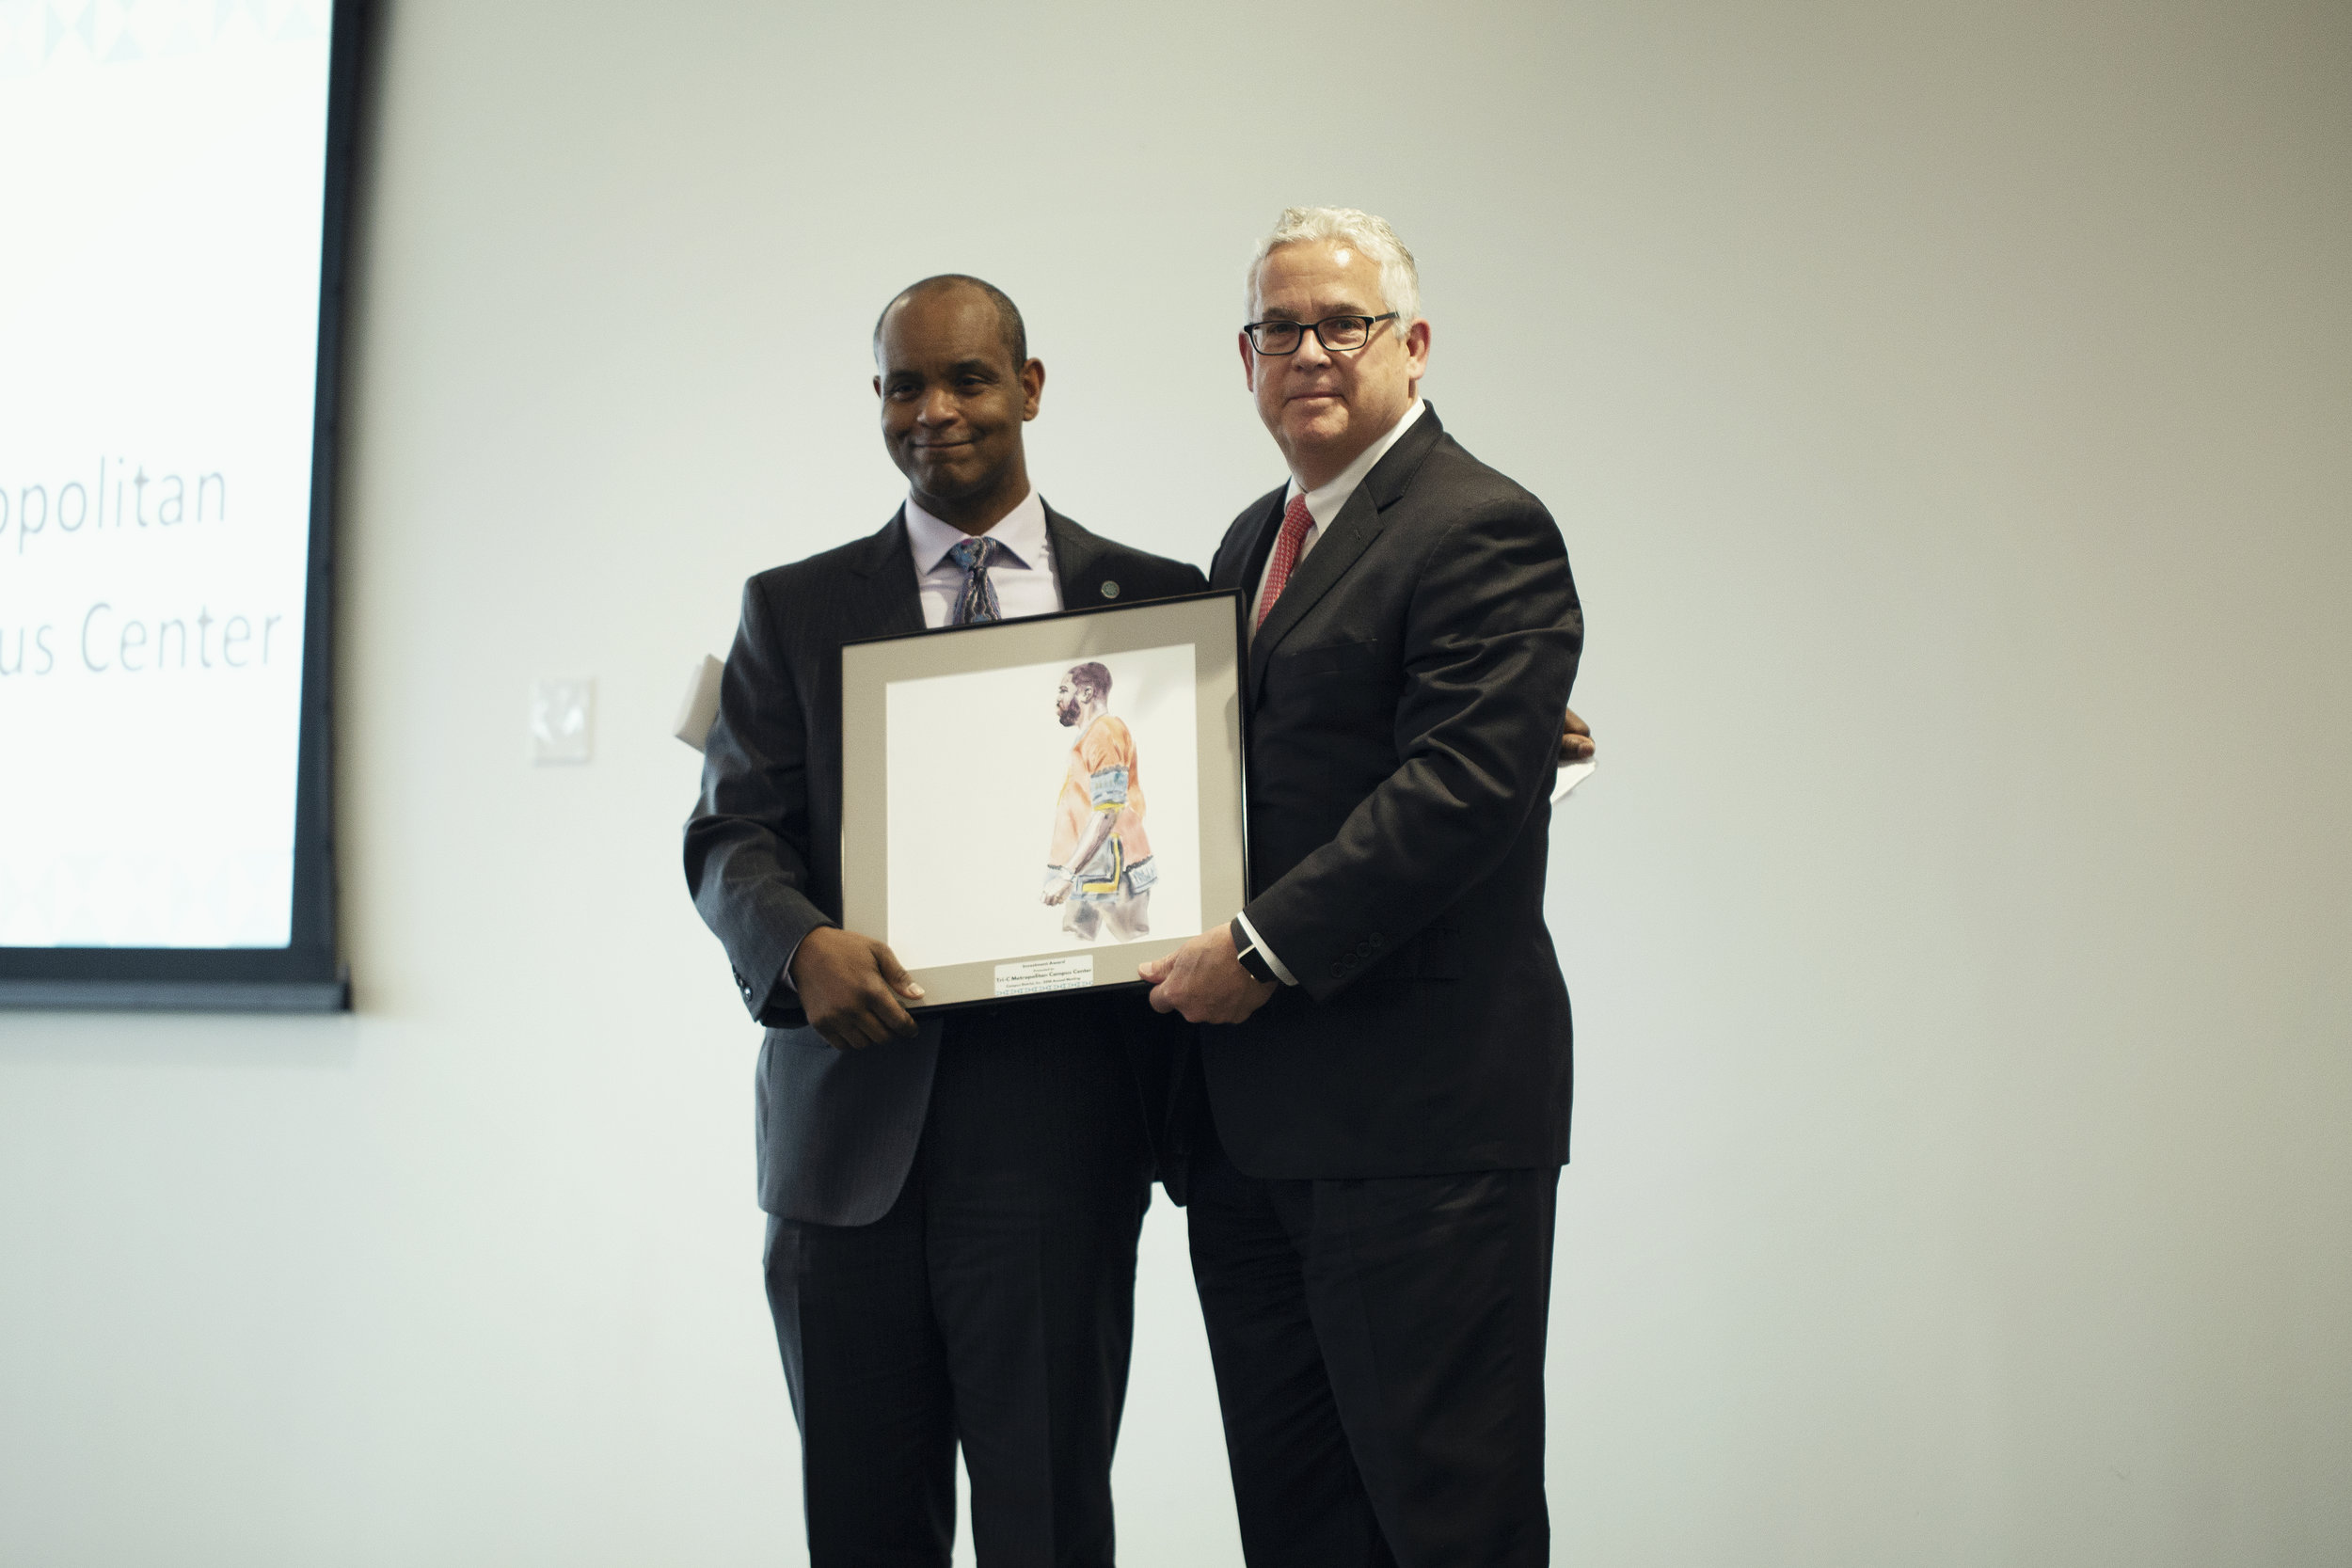 Dr. Michael Schoop, President of Tri-C's Metro Campus, accepting the Investment Award.